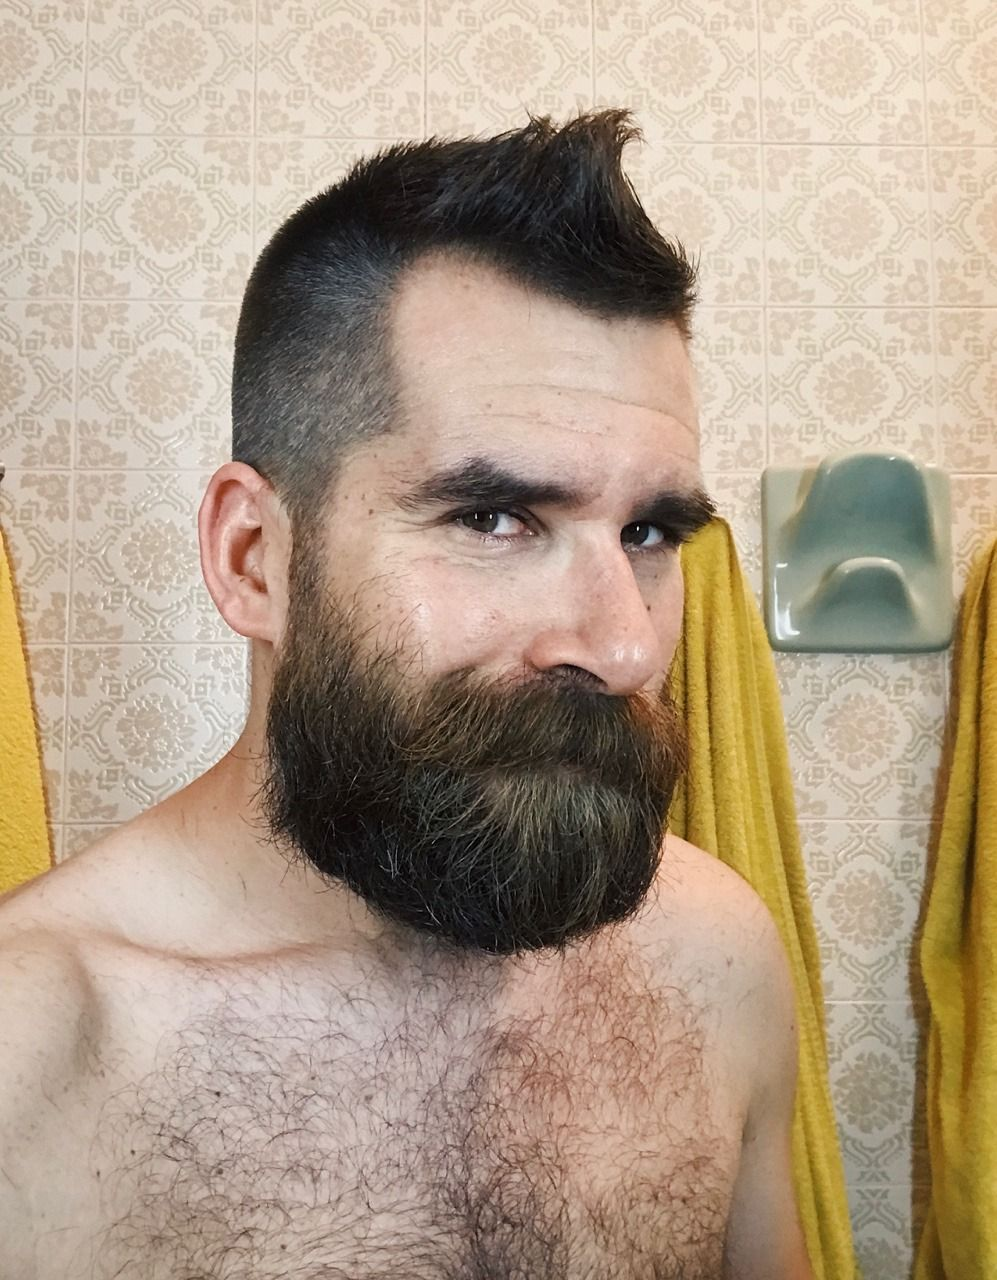 Normal mens haircut trandomness ucbetter ud  sultry men glorious ink and pristine hair